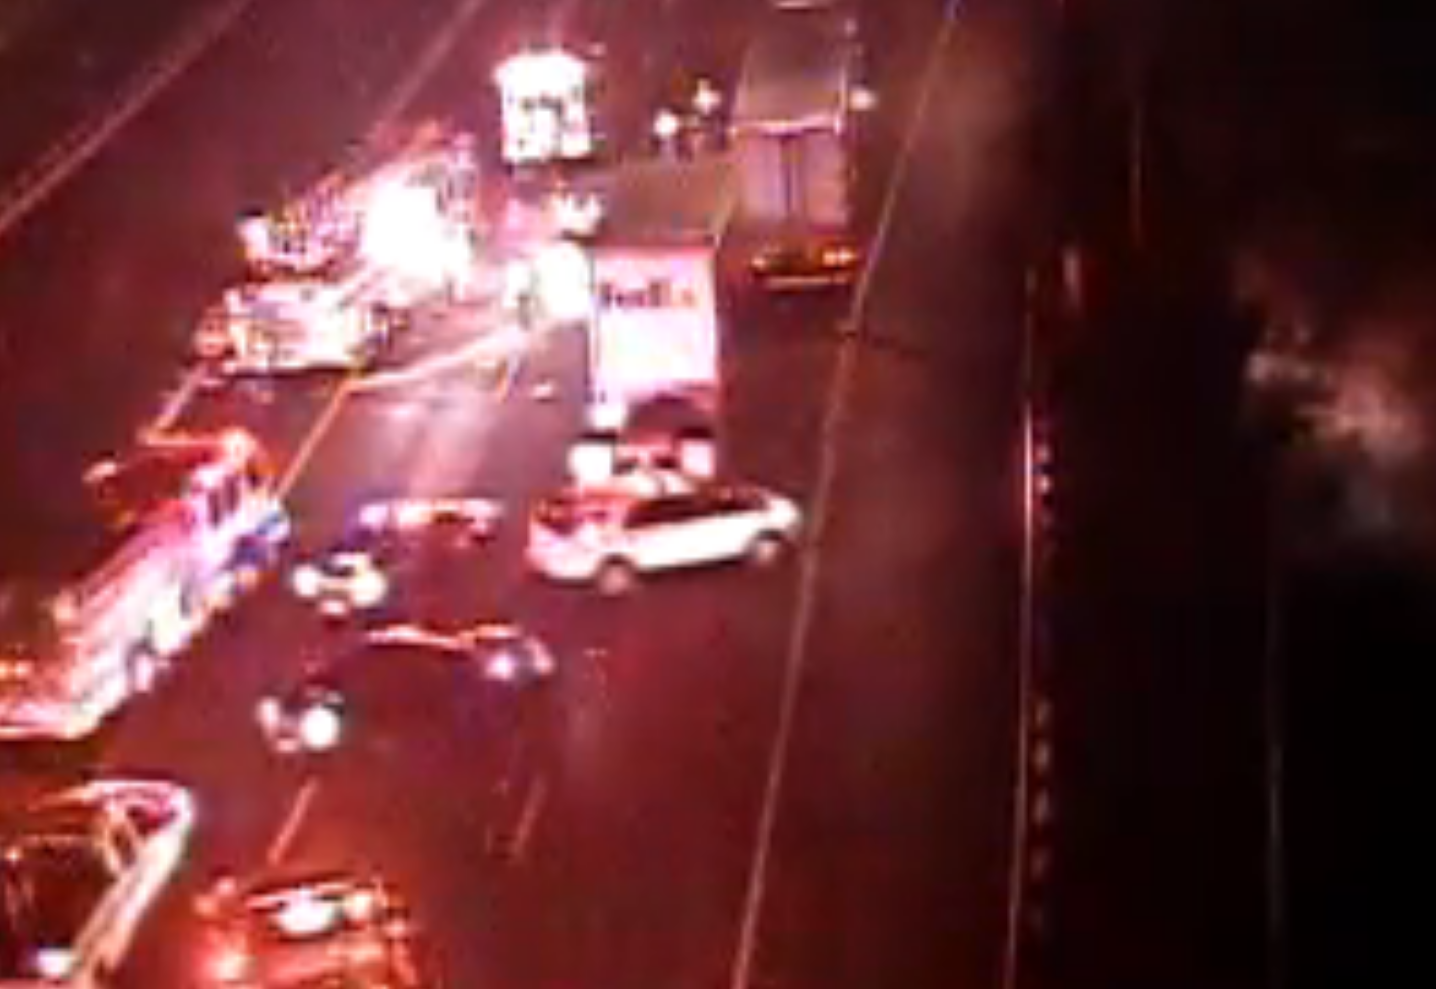 Happening Now: I-95 Shutdown In Maryland Due To Major Accident